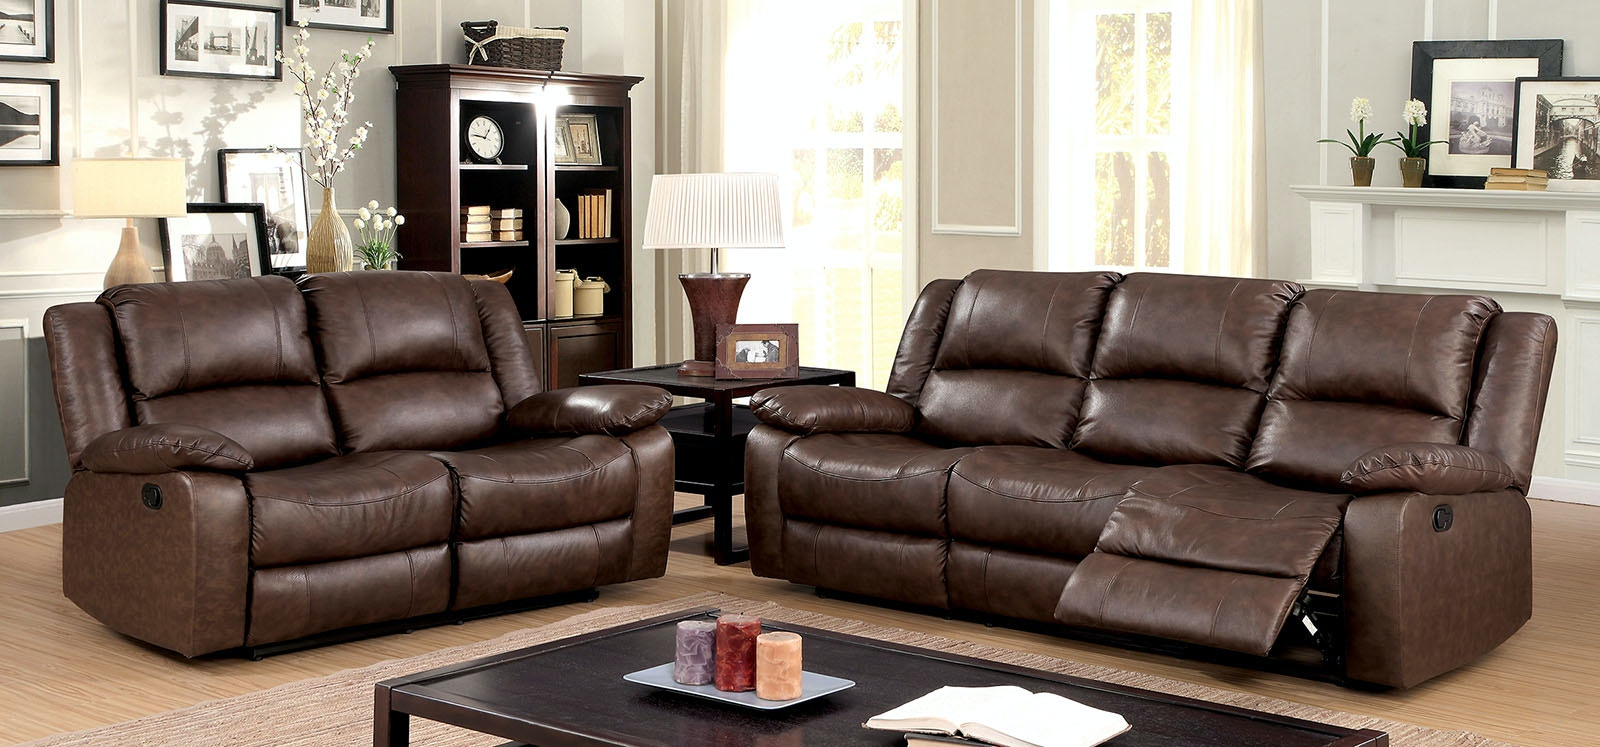 Furniture Of America Sofa W/ 2 Recliners CM6293 SF